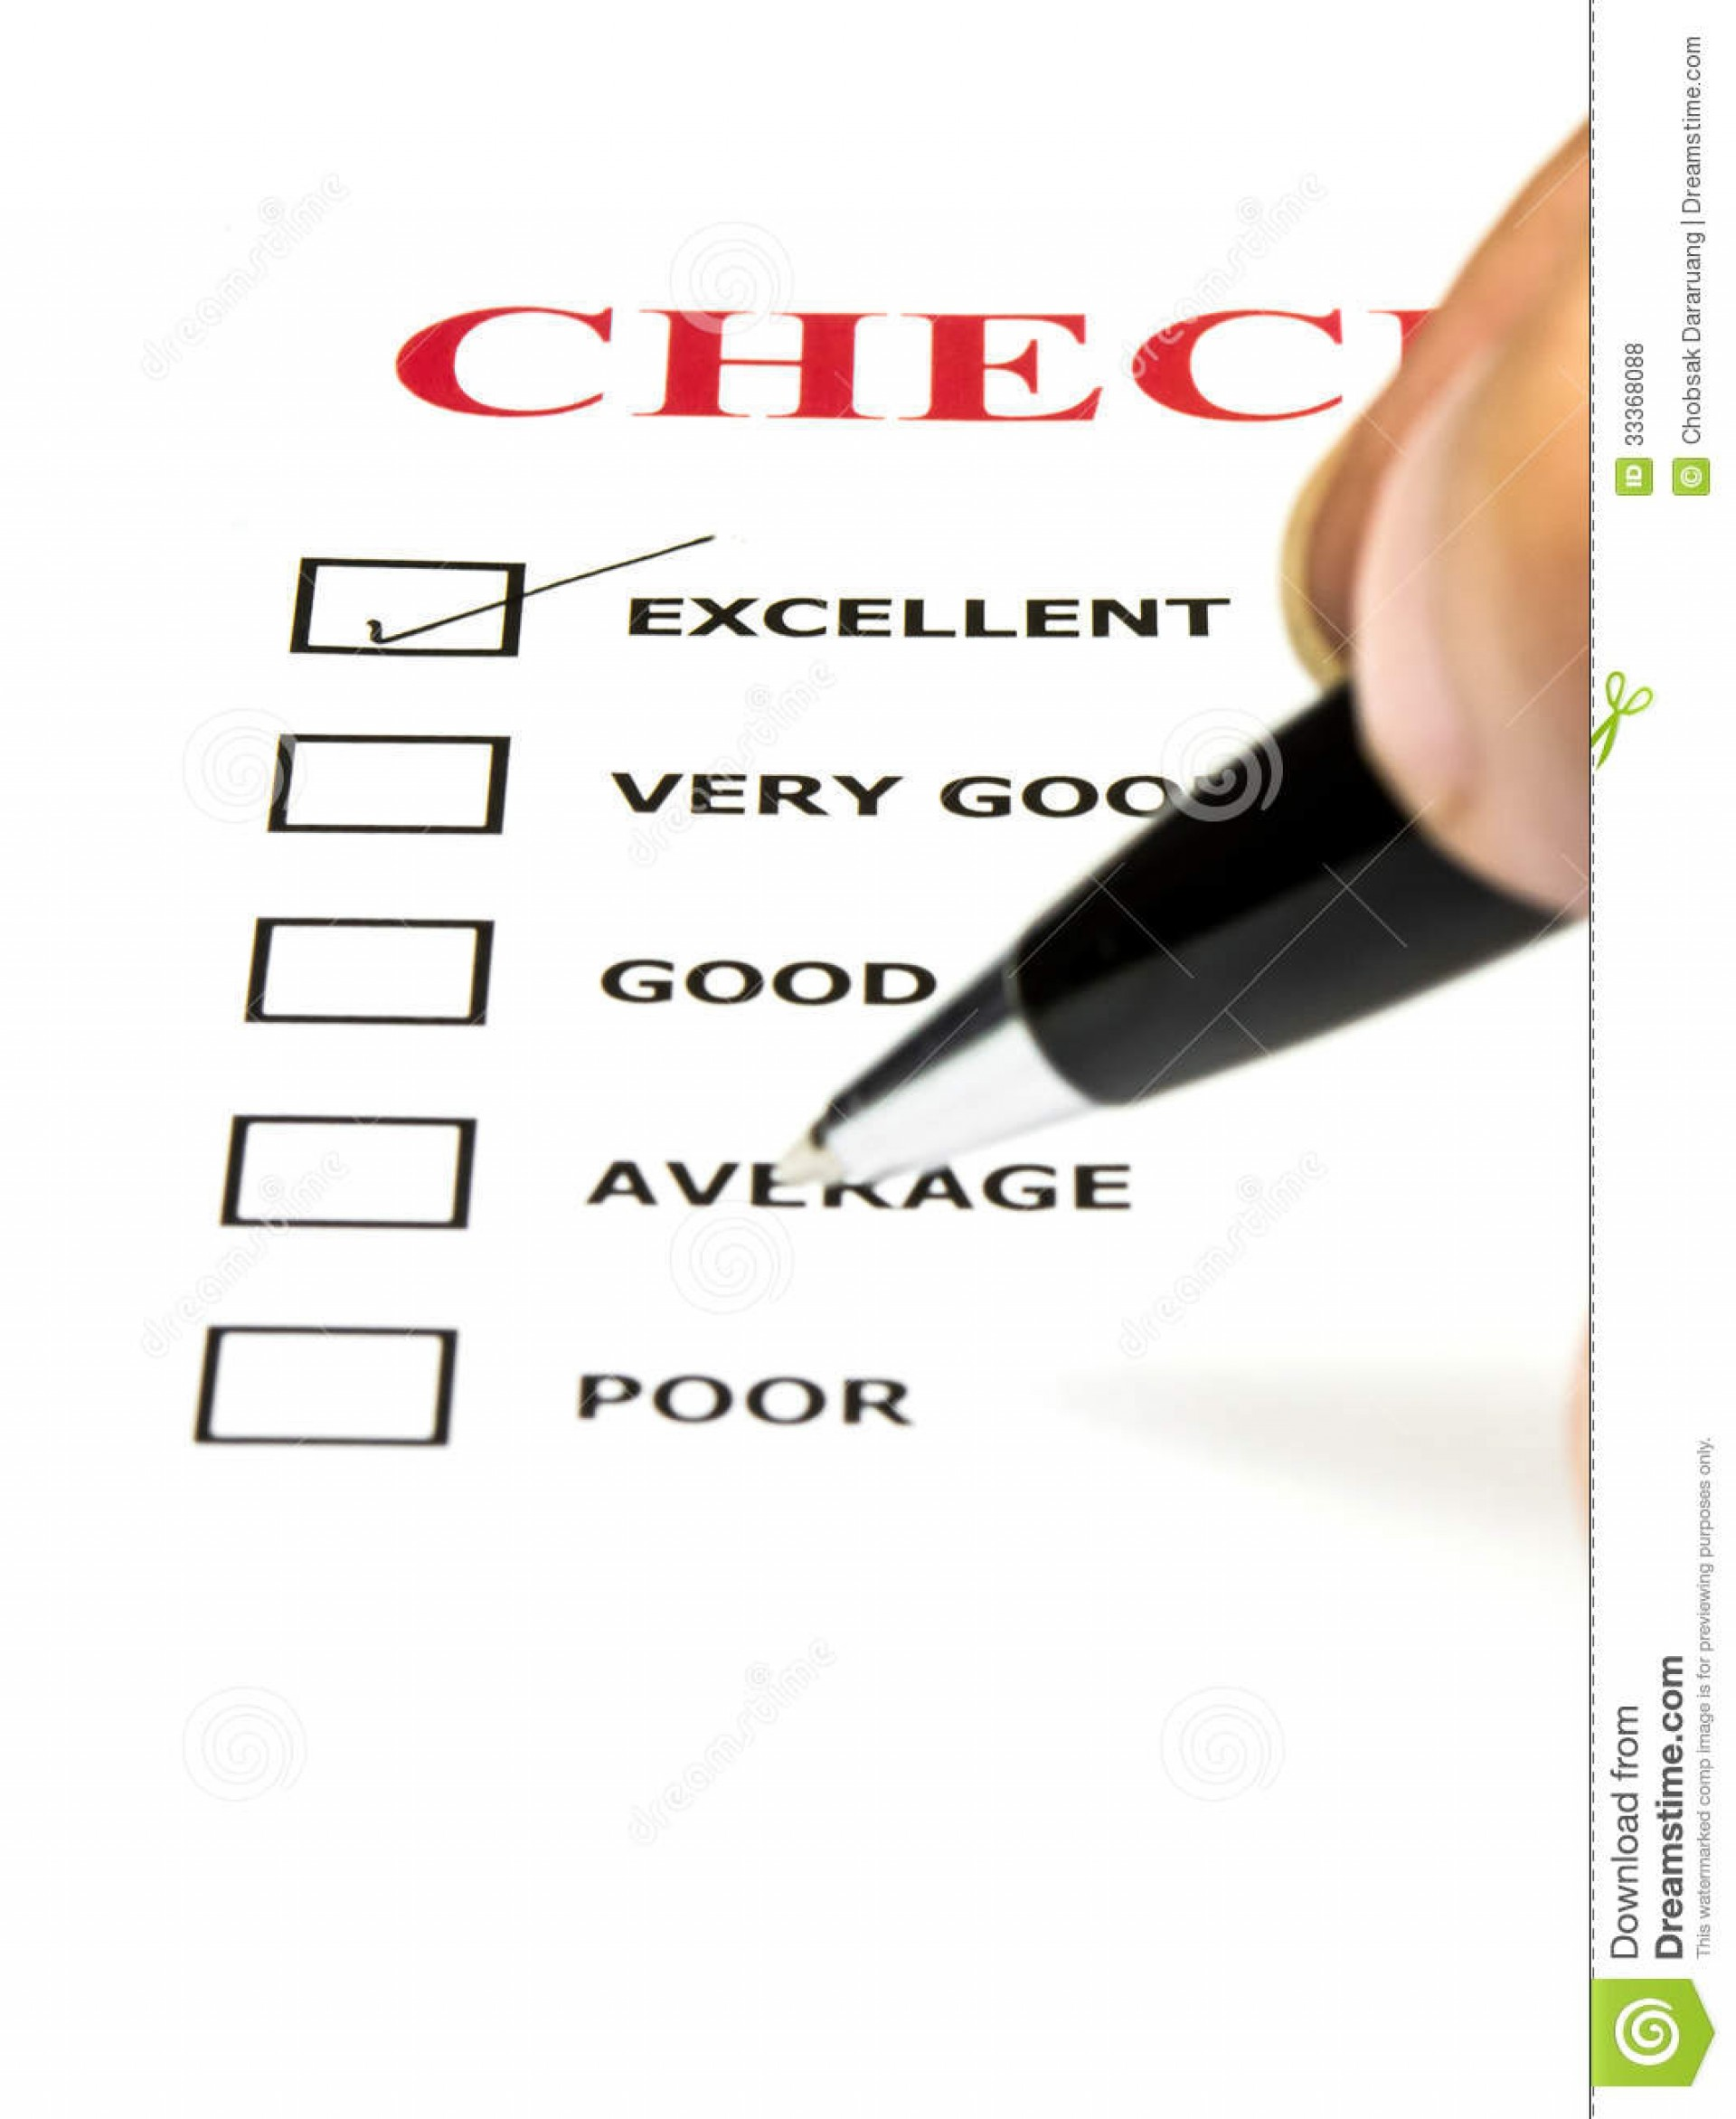 001 Essay Example Check List Survay Paper Close Up Angled Shot Survey Form Tick Excellent Box Customer Service Archaicawful My For Punctuation Errors Free On Turnitin Grammar 1920